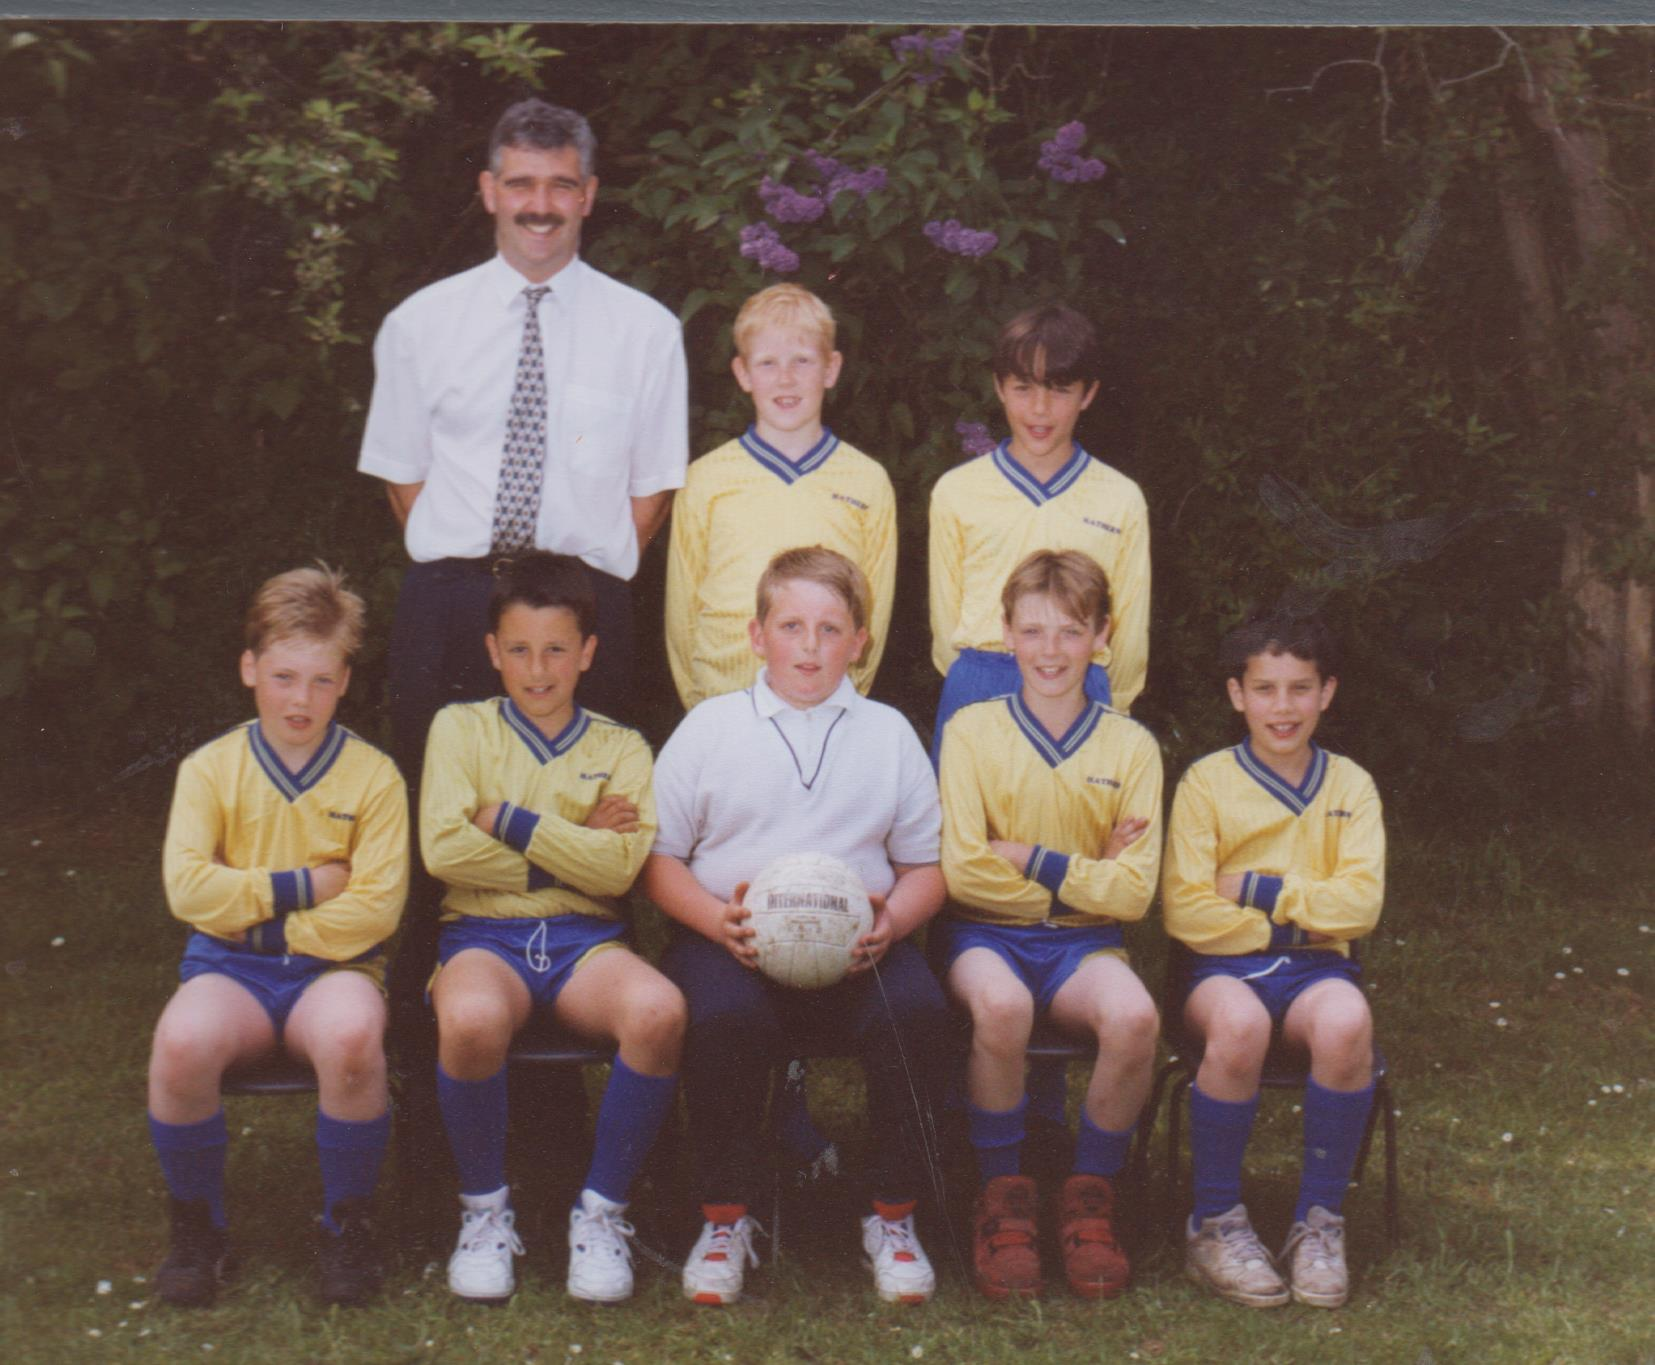 school_football_team_james_roe_et_al_001.jpg